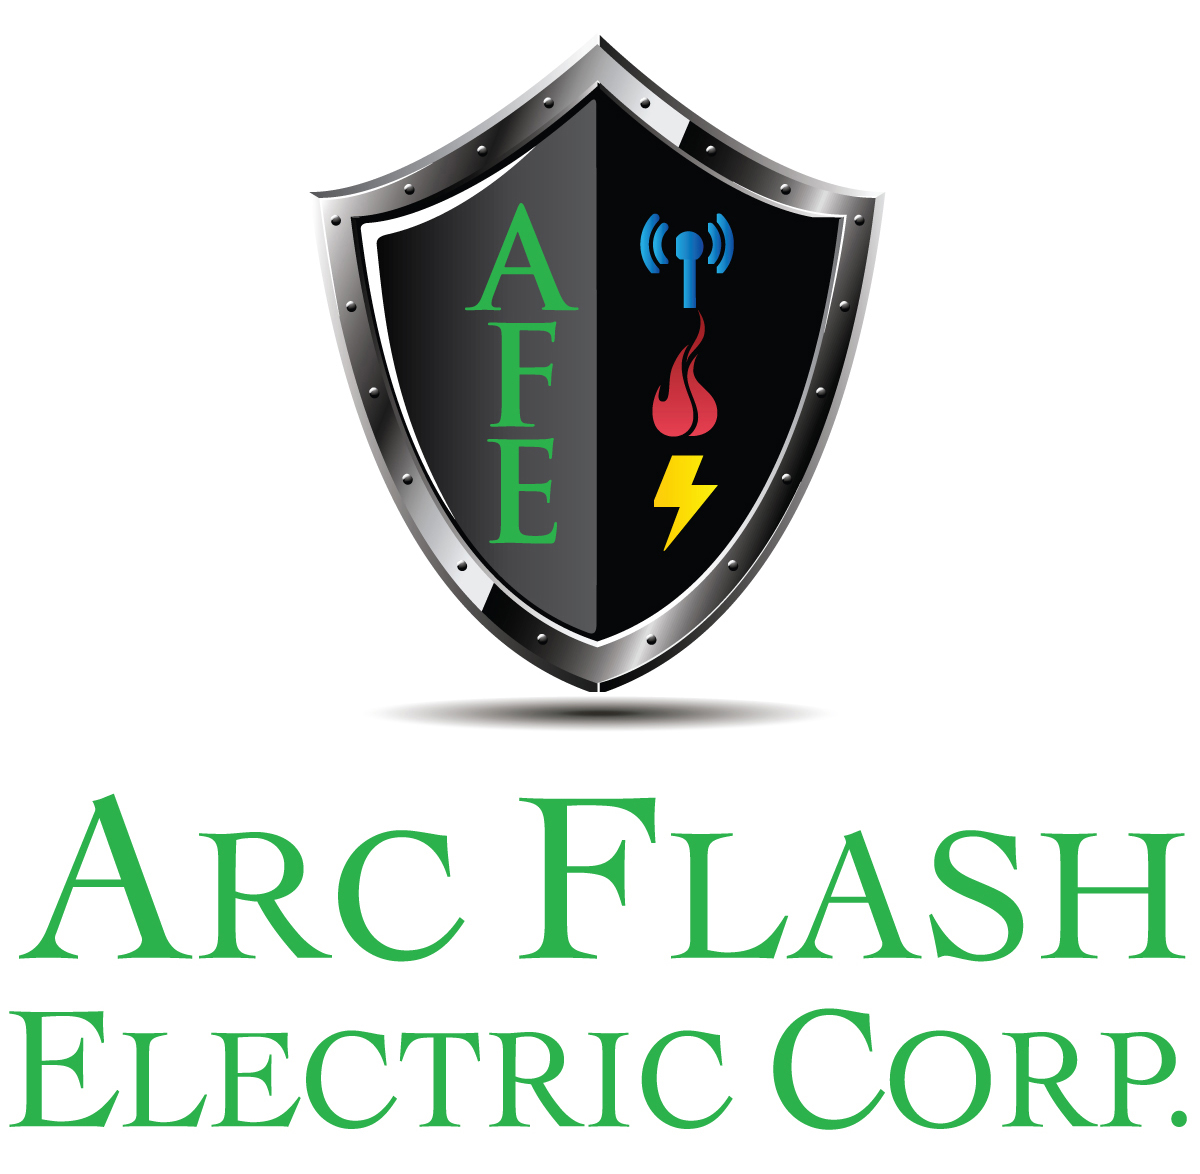 electric arc flash essay Home essays arc flash arc flash  topics: occupational  (a prominent electrical researcher) describe it as a thermal event associated with an electric arc and its effects on the human body equal to the lower limits for the 3rd degree burn(ralph, 2000) the research that ralph lee published is still used today to calculate the level of burn.